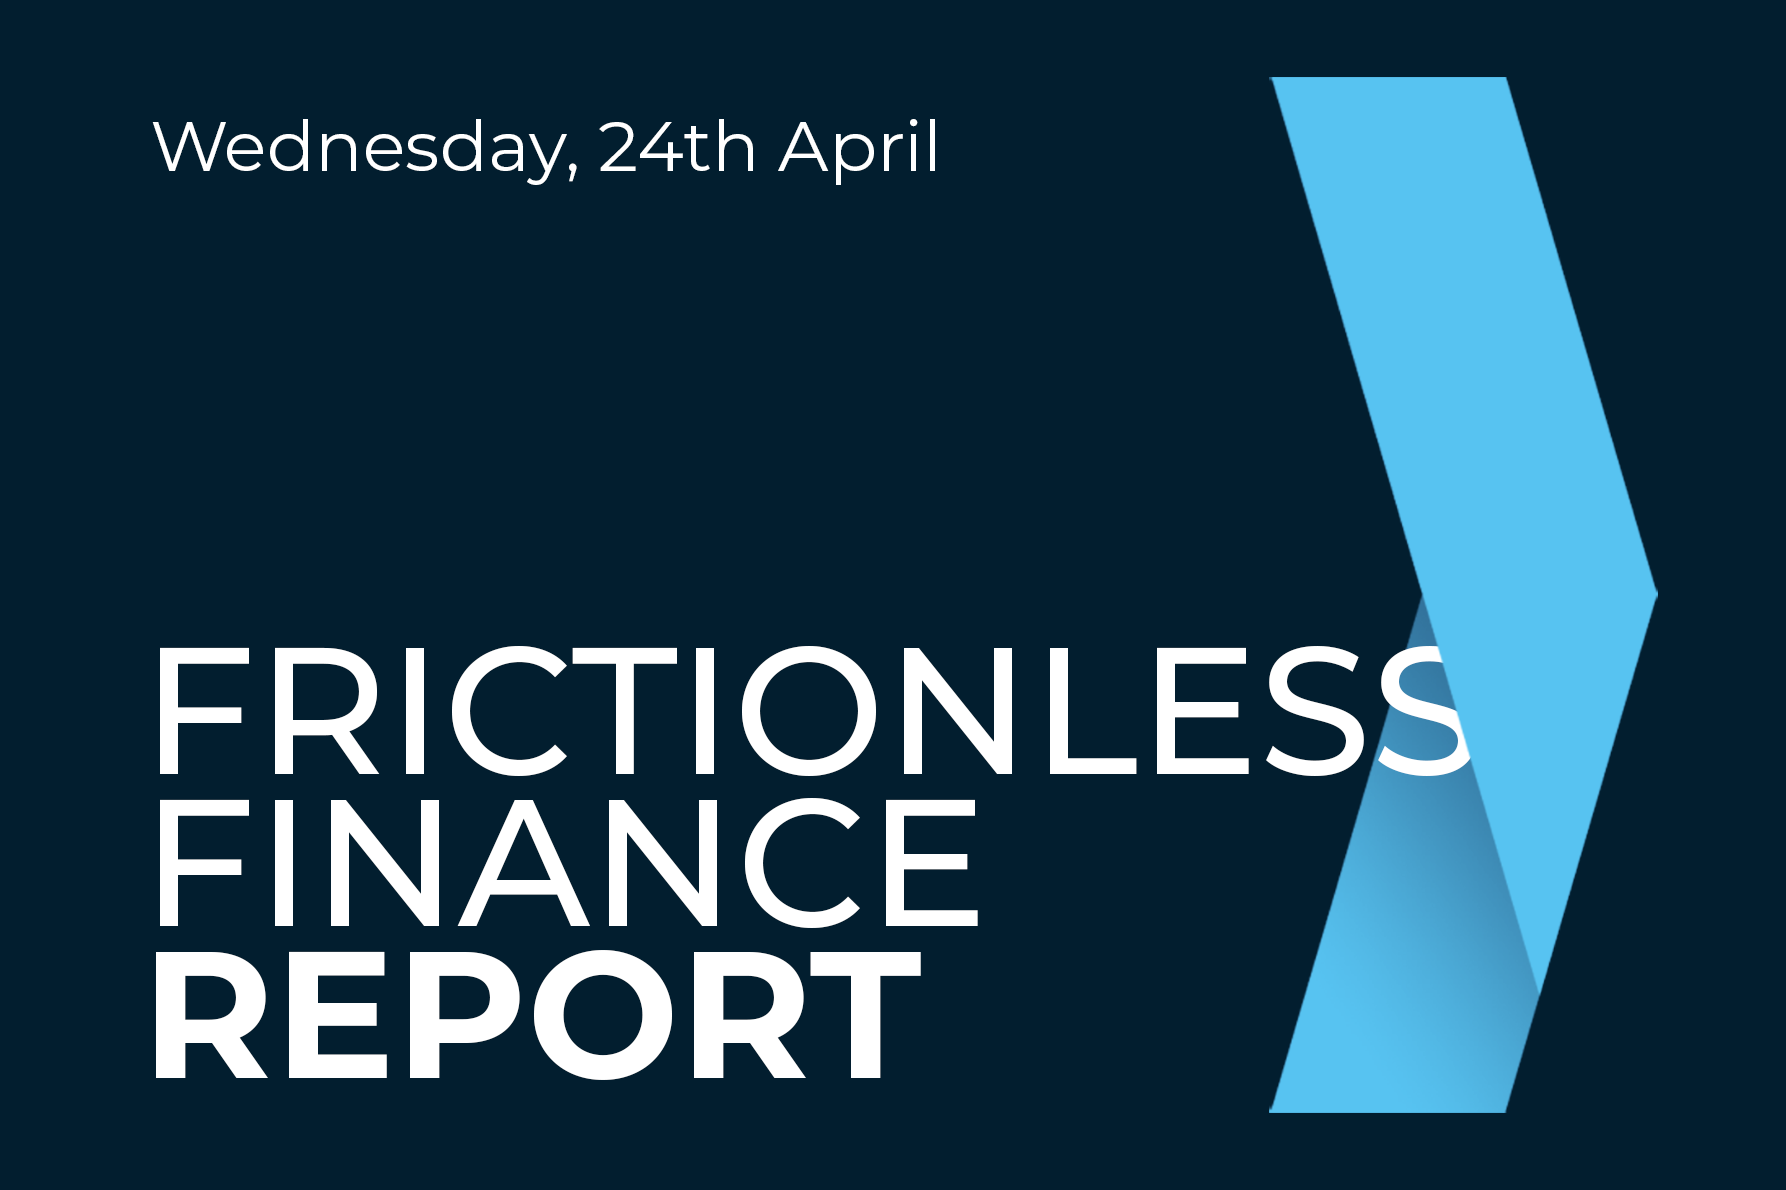 Frictionless Finance Report - Wednesday 24th April